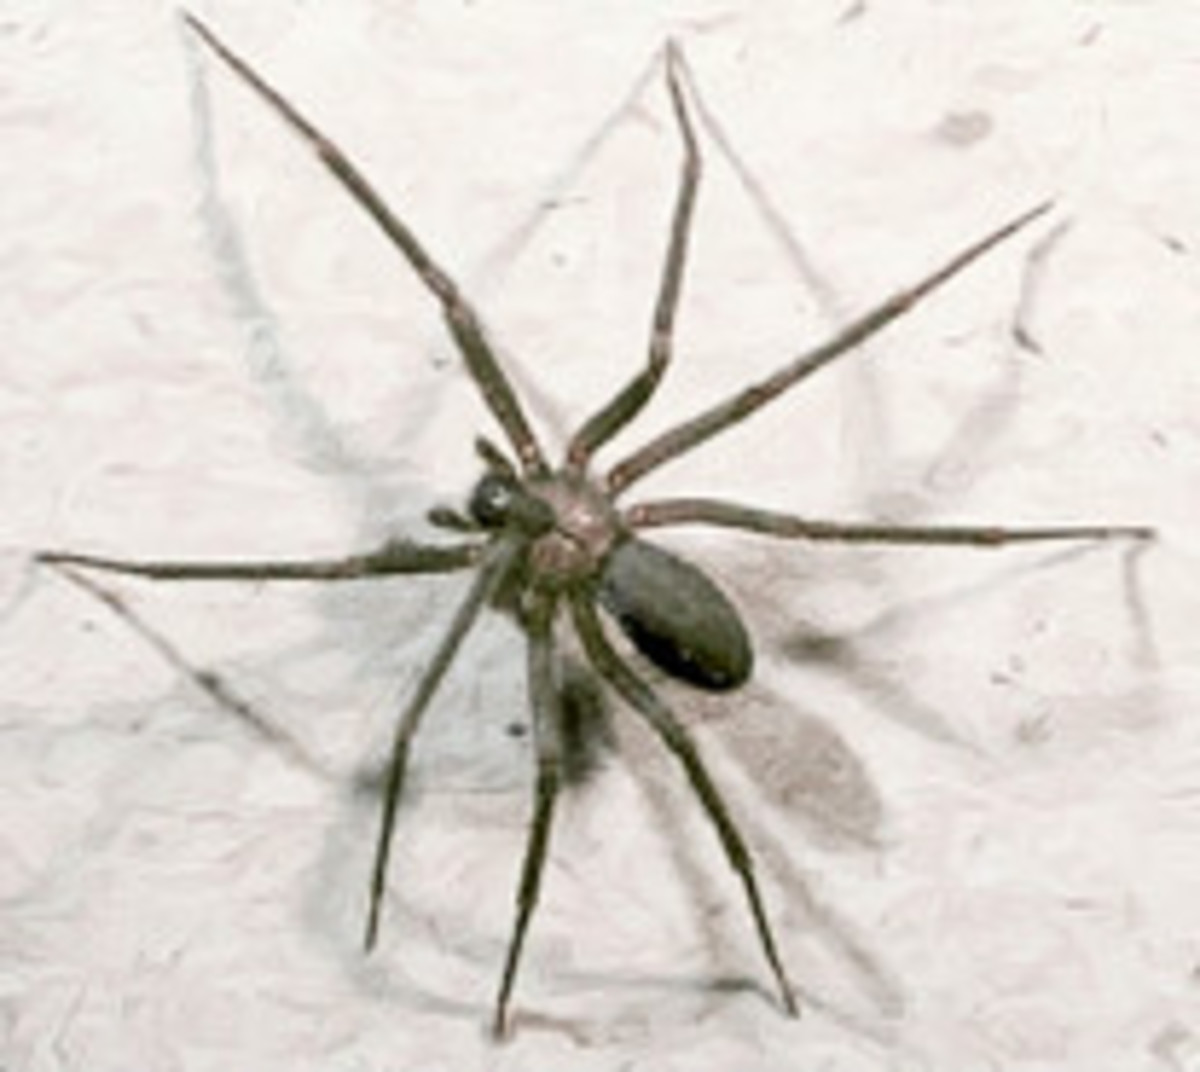 A brown recluse has a violin shape on its back.